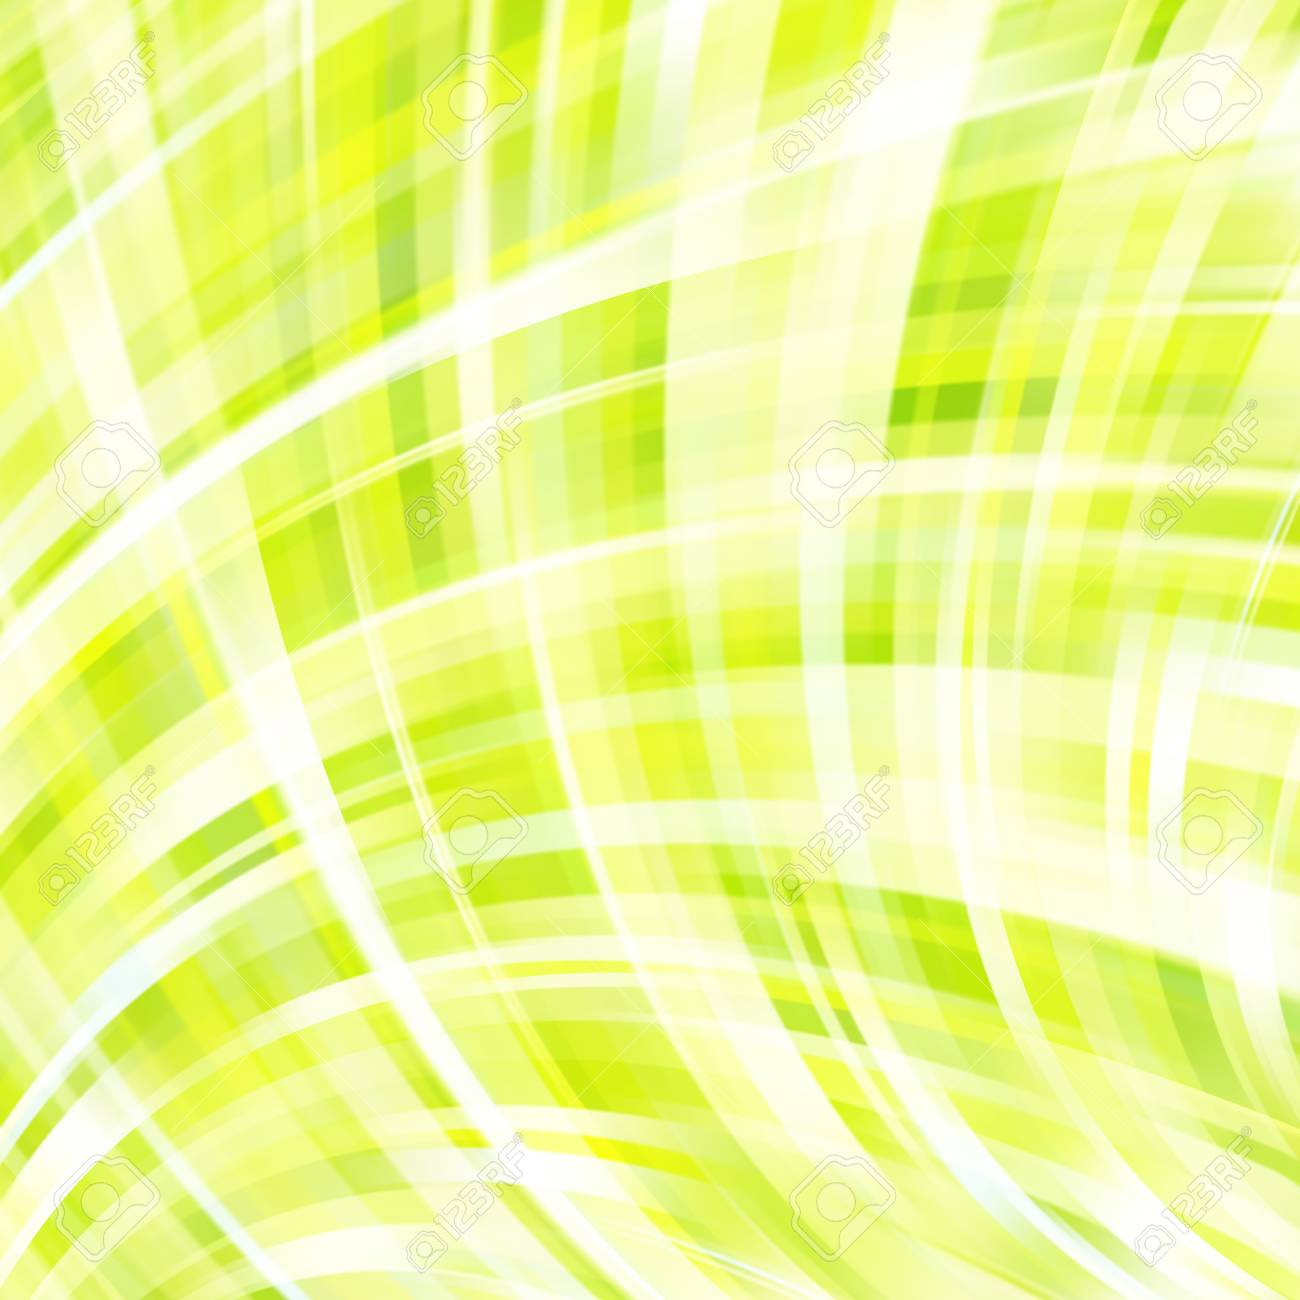 Shine Glow Background Wallpaper Pattern Abstract Shapes Yellow Green White Colors